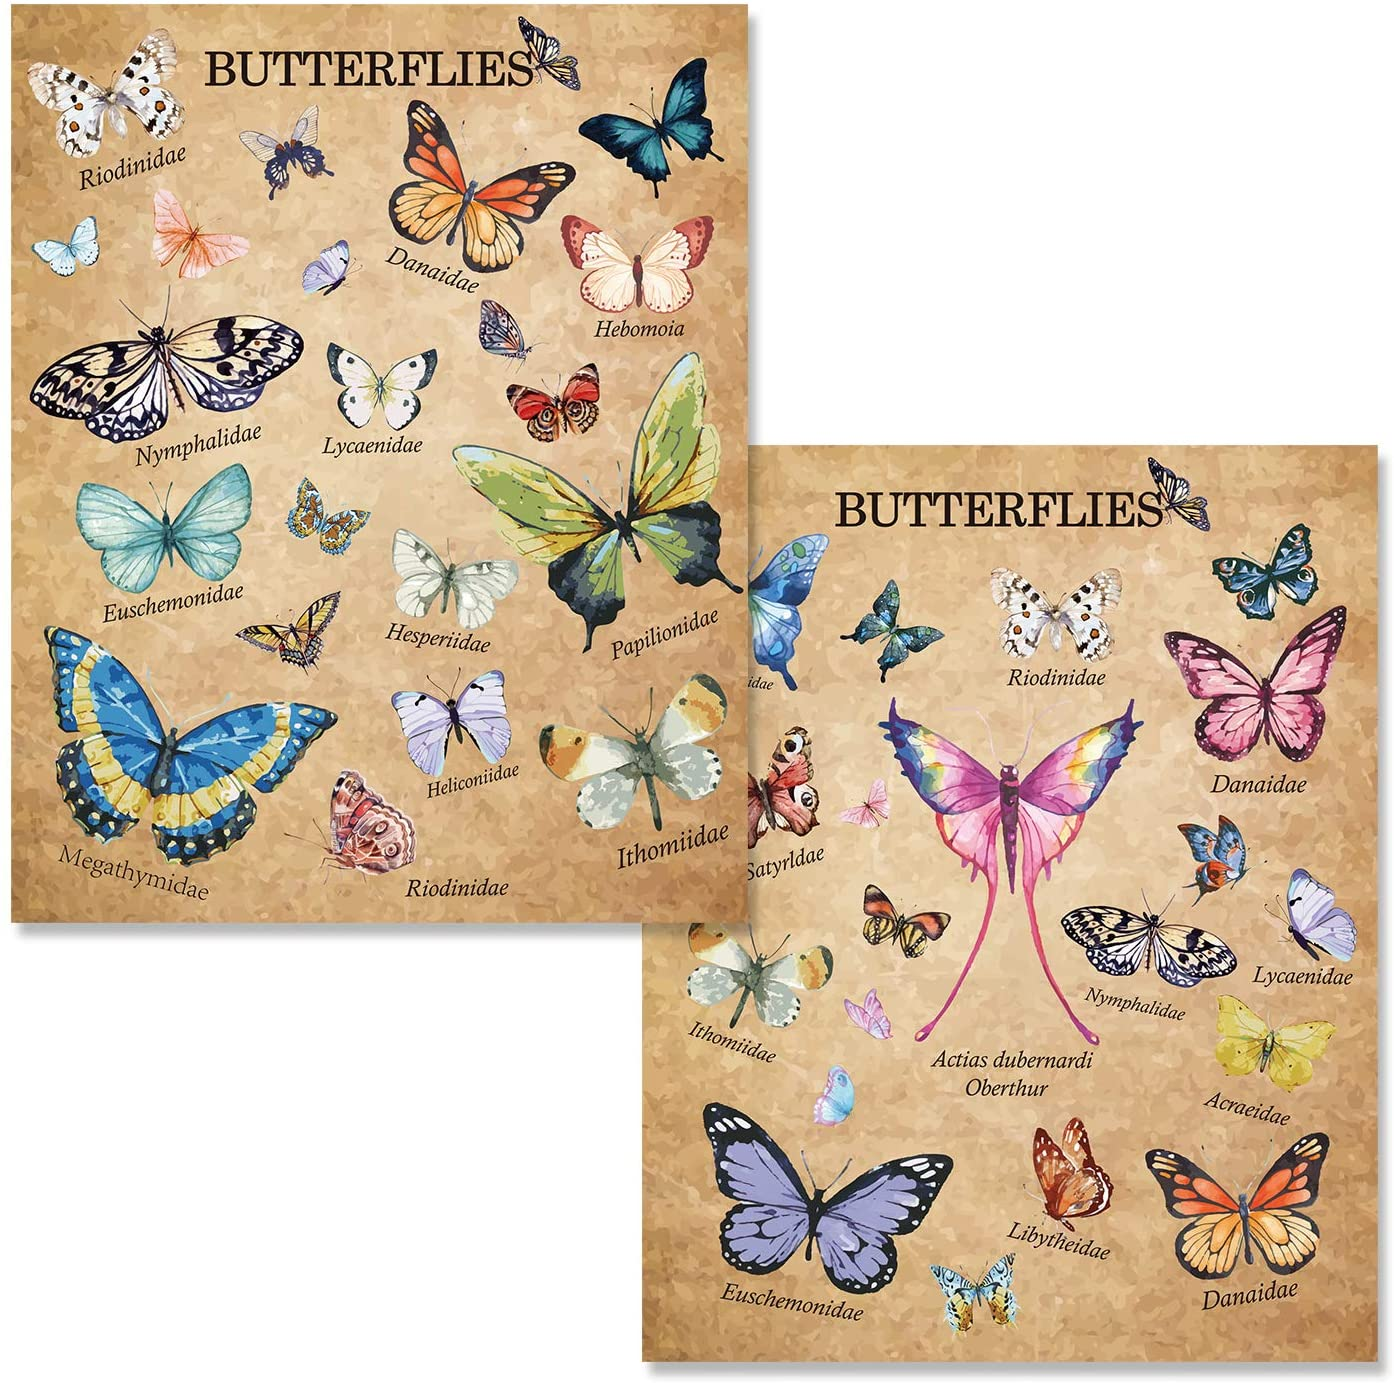 """Vintage Butterfly Poster Wall Decor for Bedroom, Vintage Papillons Butterflies Collection Wall Art Aesthetic Home Office Living Room Decor for Girls, 11"""" x 14"""",Unframed"""